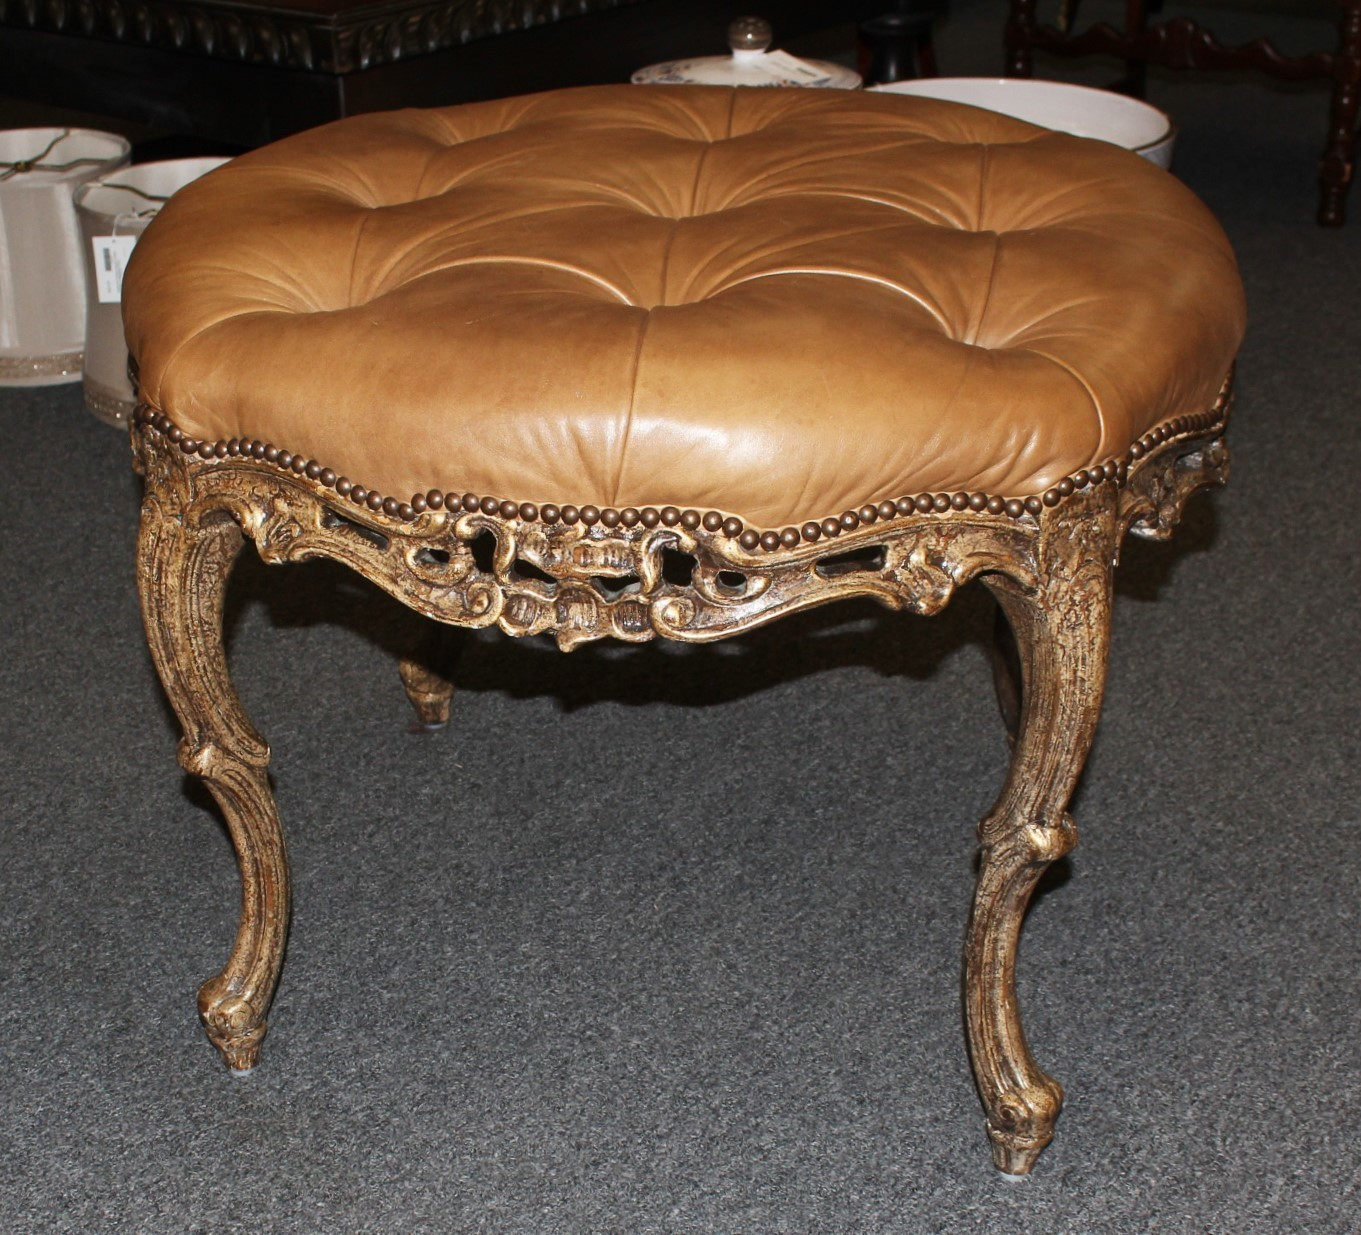 """Vintage French 30"""" Round Carved Cabriole Legs Tufted Leather Ottoman Bench"""